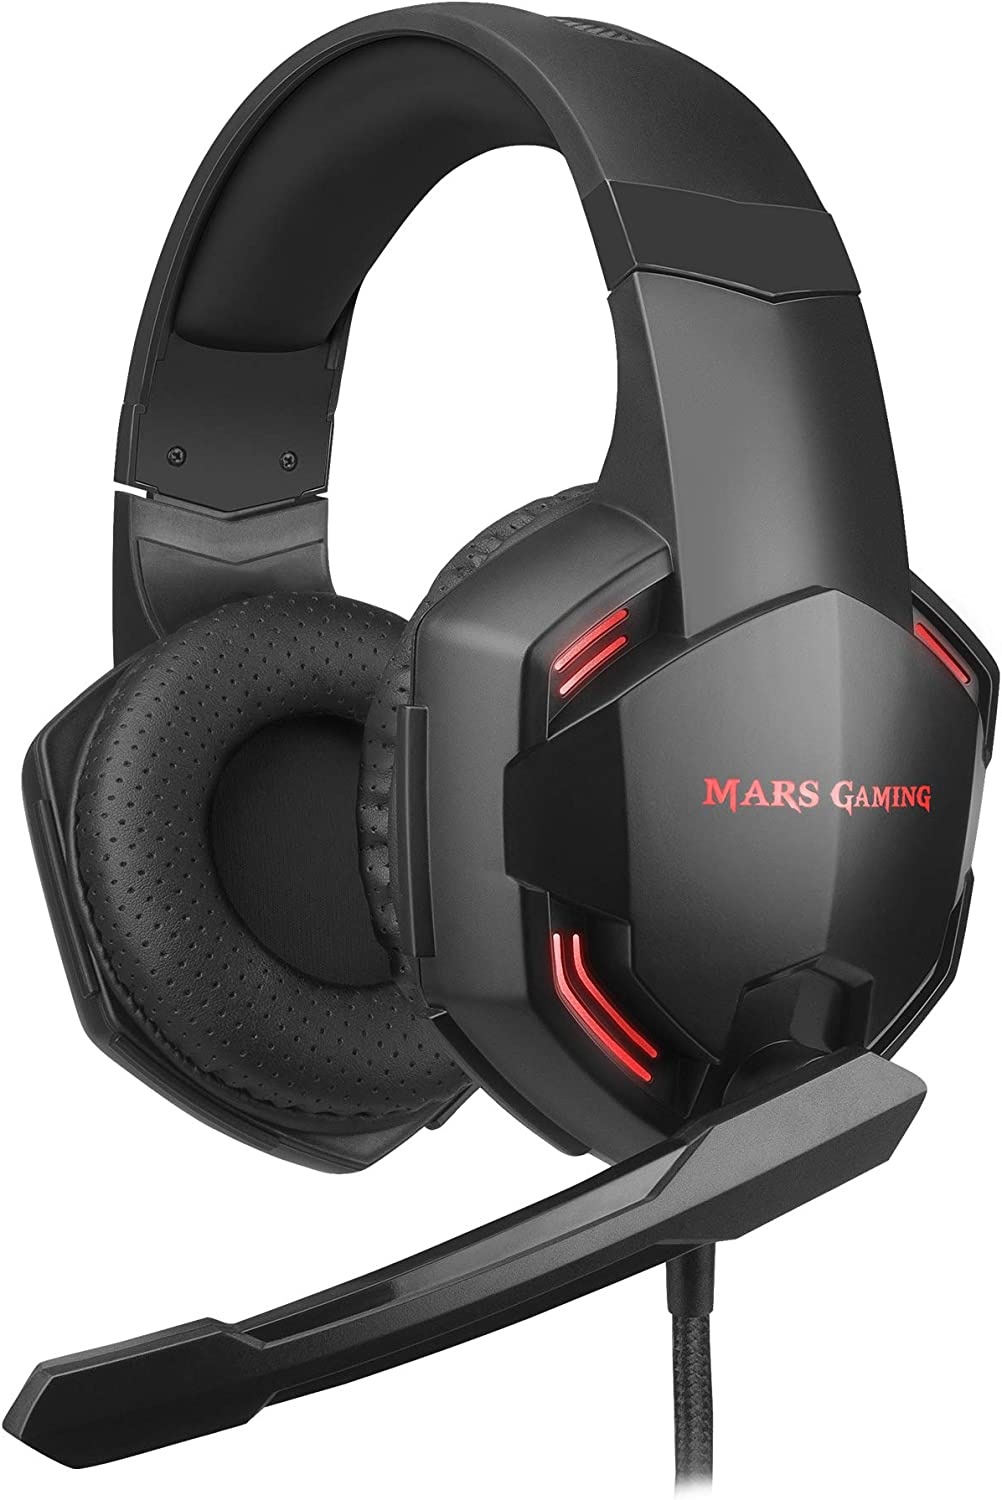 Mars Gaming MHXPRO71, Cascos Gaming 7.1 + Micro, superBASS, PC/PS4/PS5/SWITCH